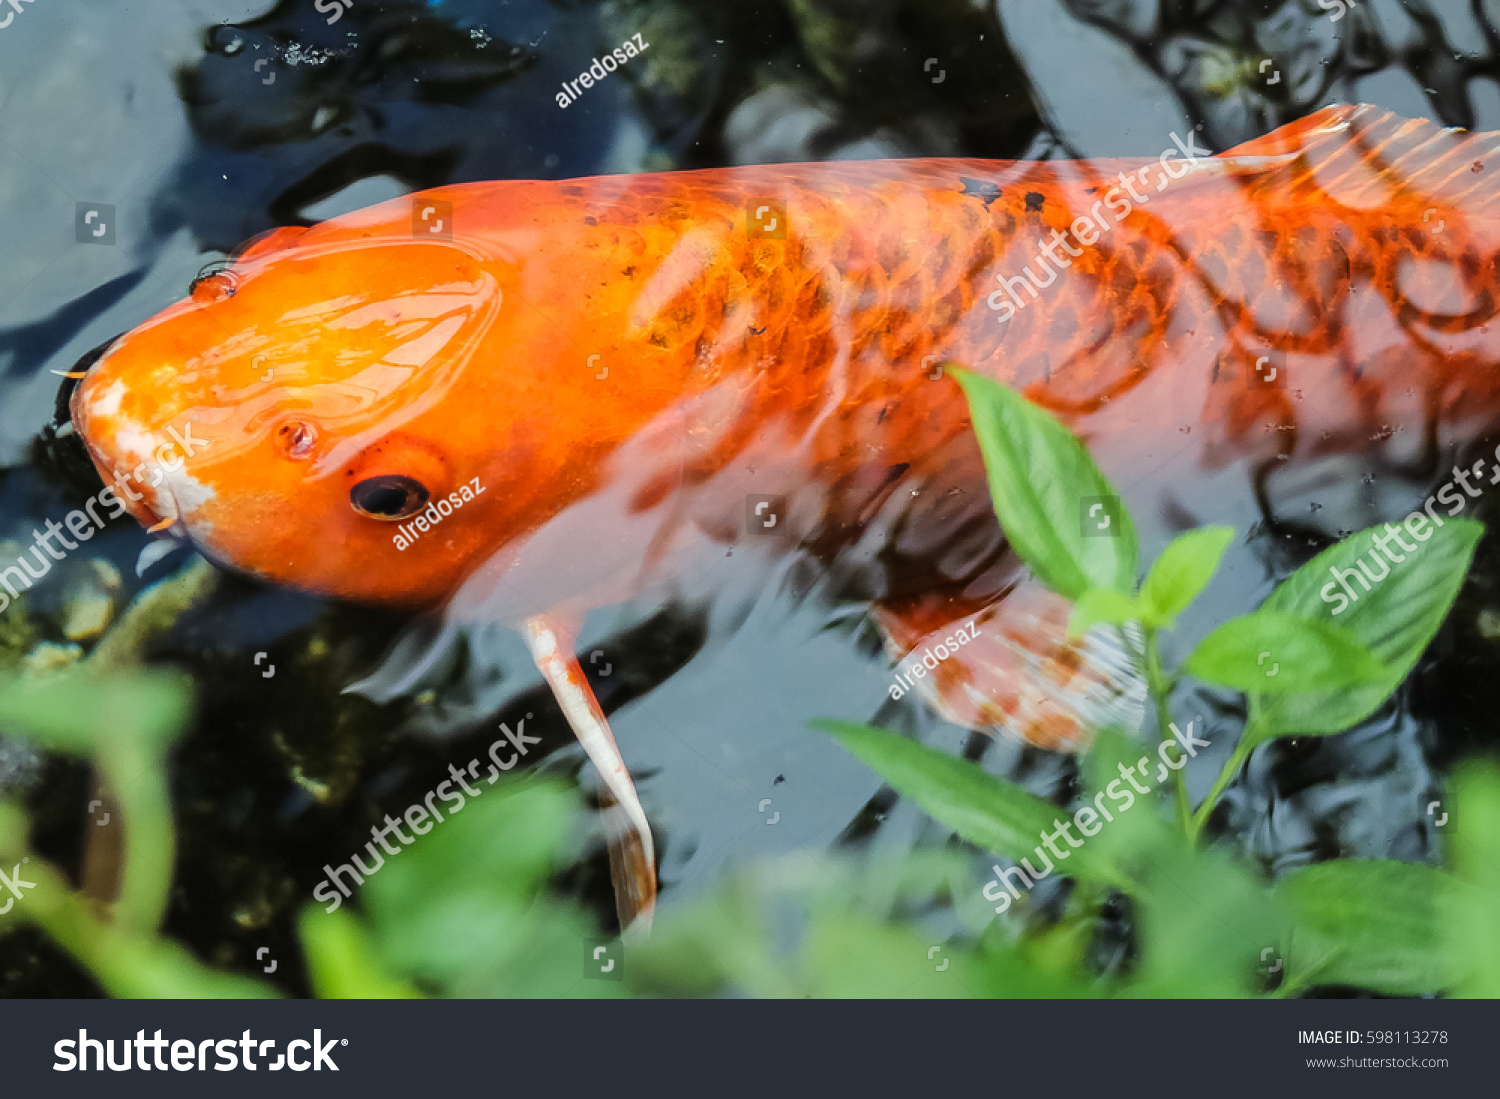 Koi fancy orange carp stock photo 598113278 shutterstock for Orange koi carp